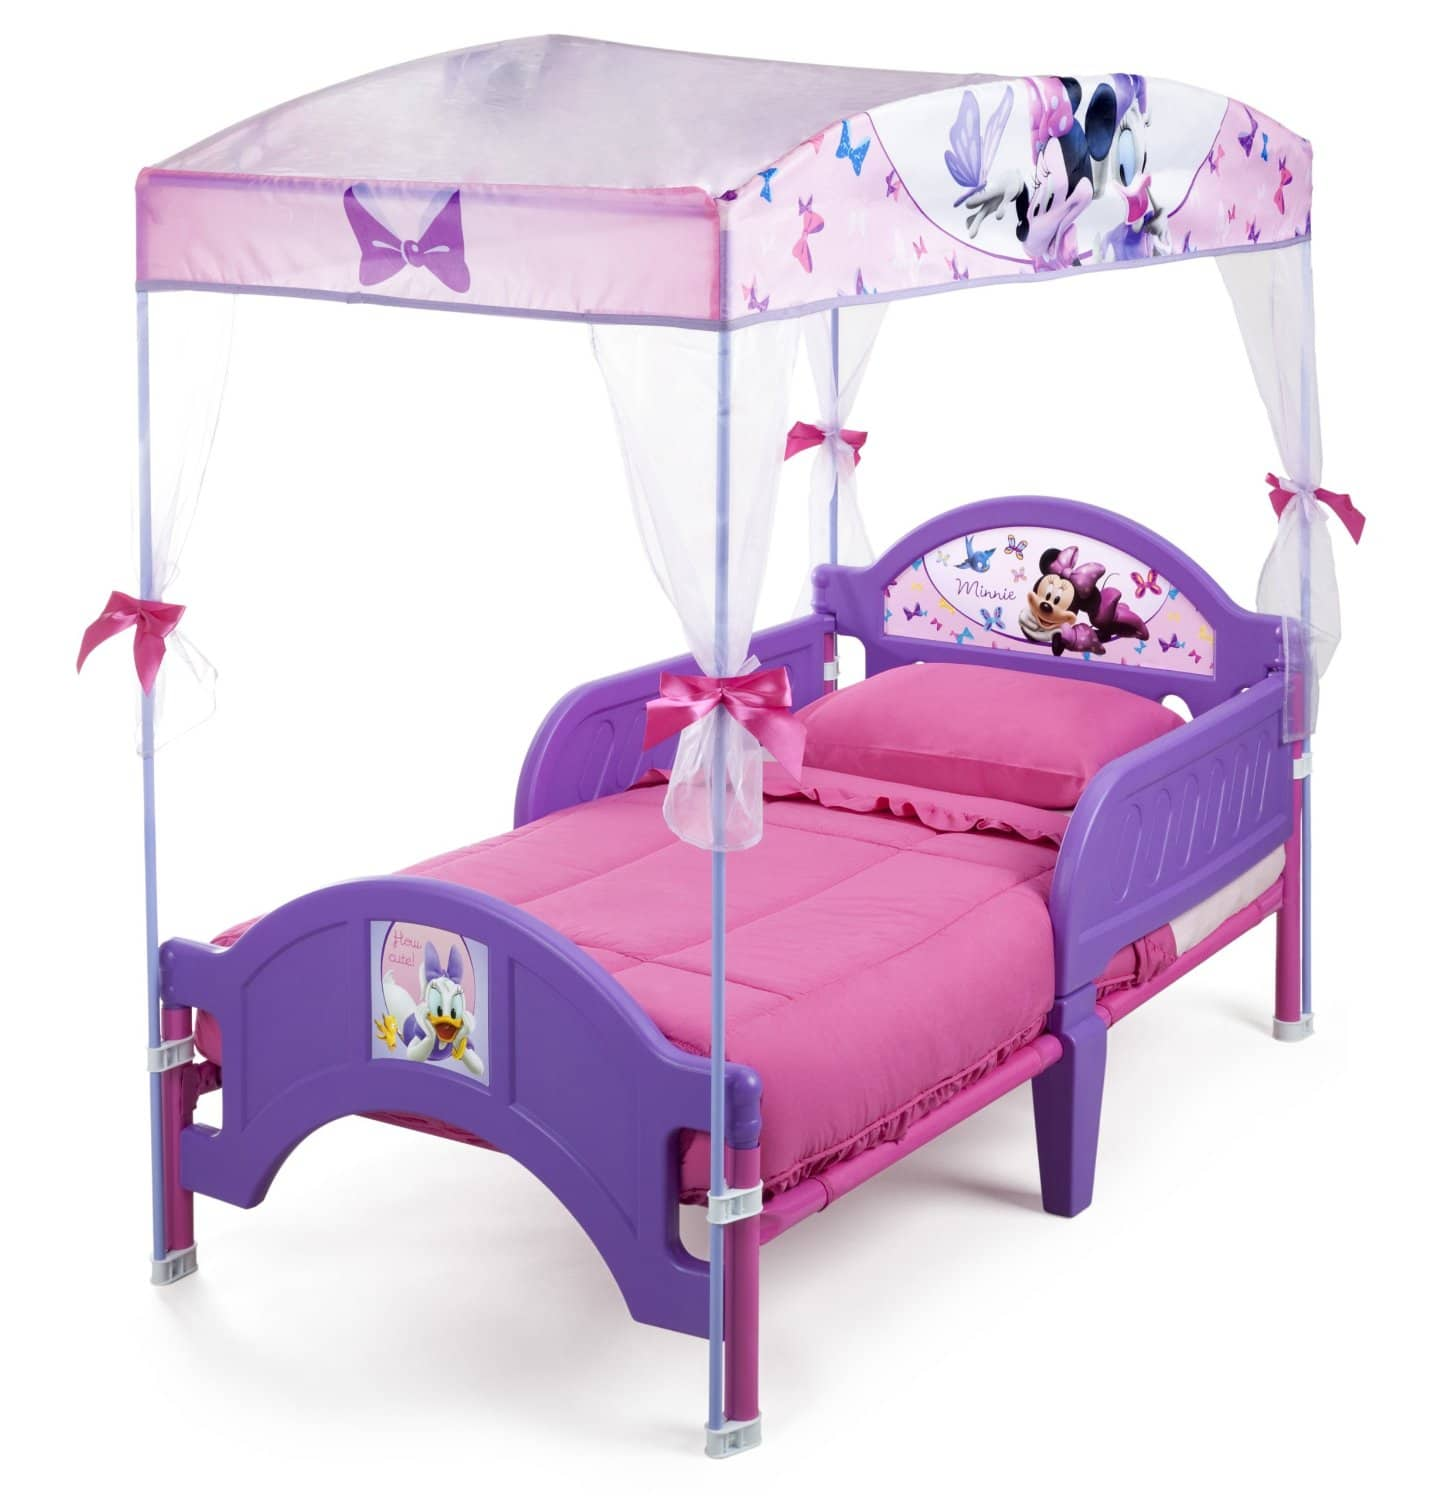 Top 10 Best Toddler Beds In 2015 Reviews